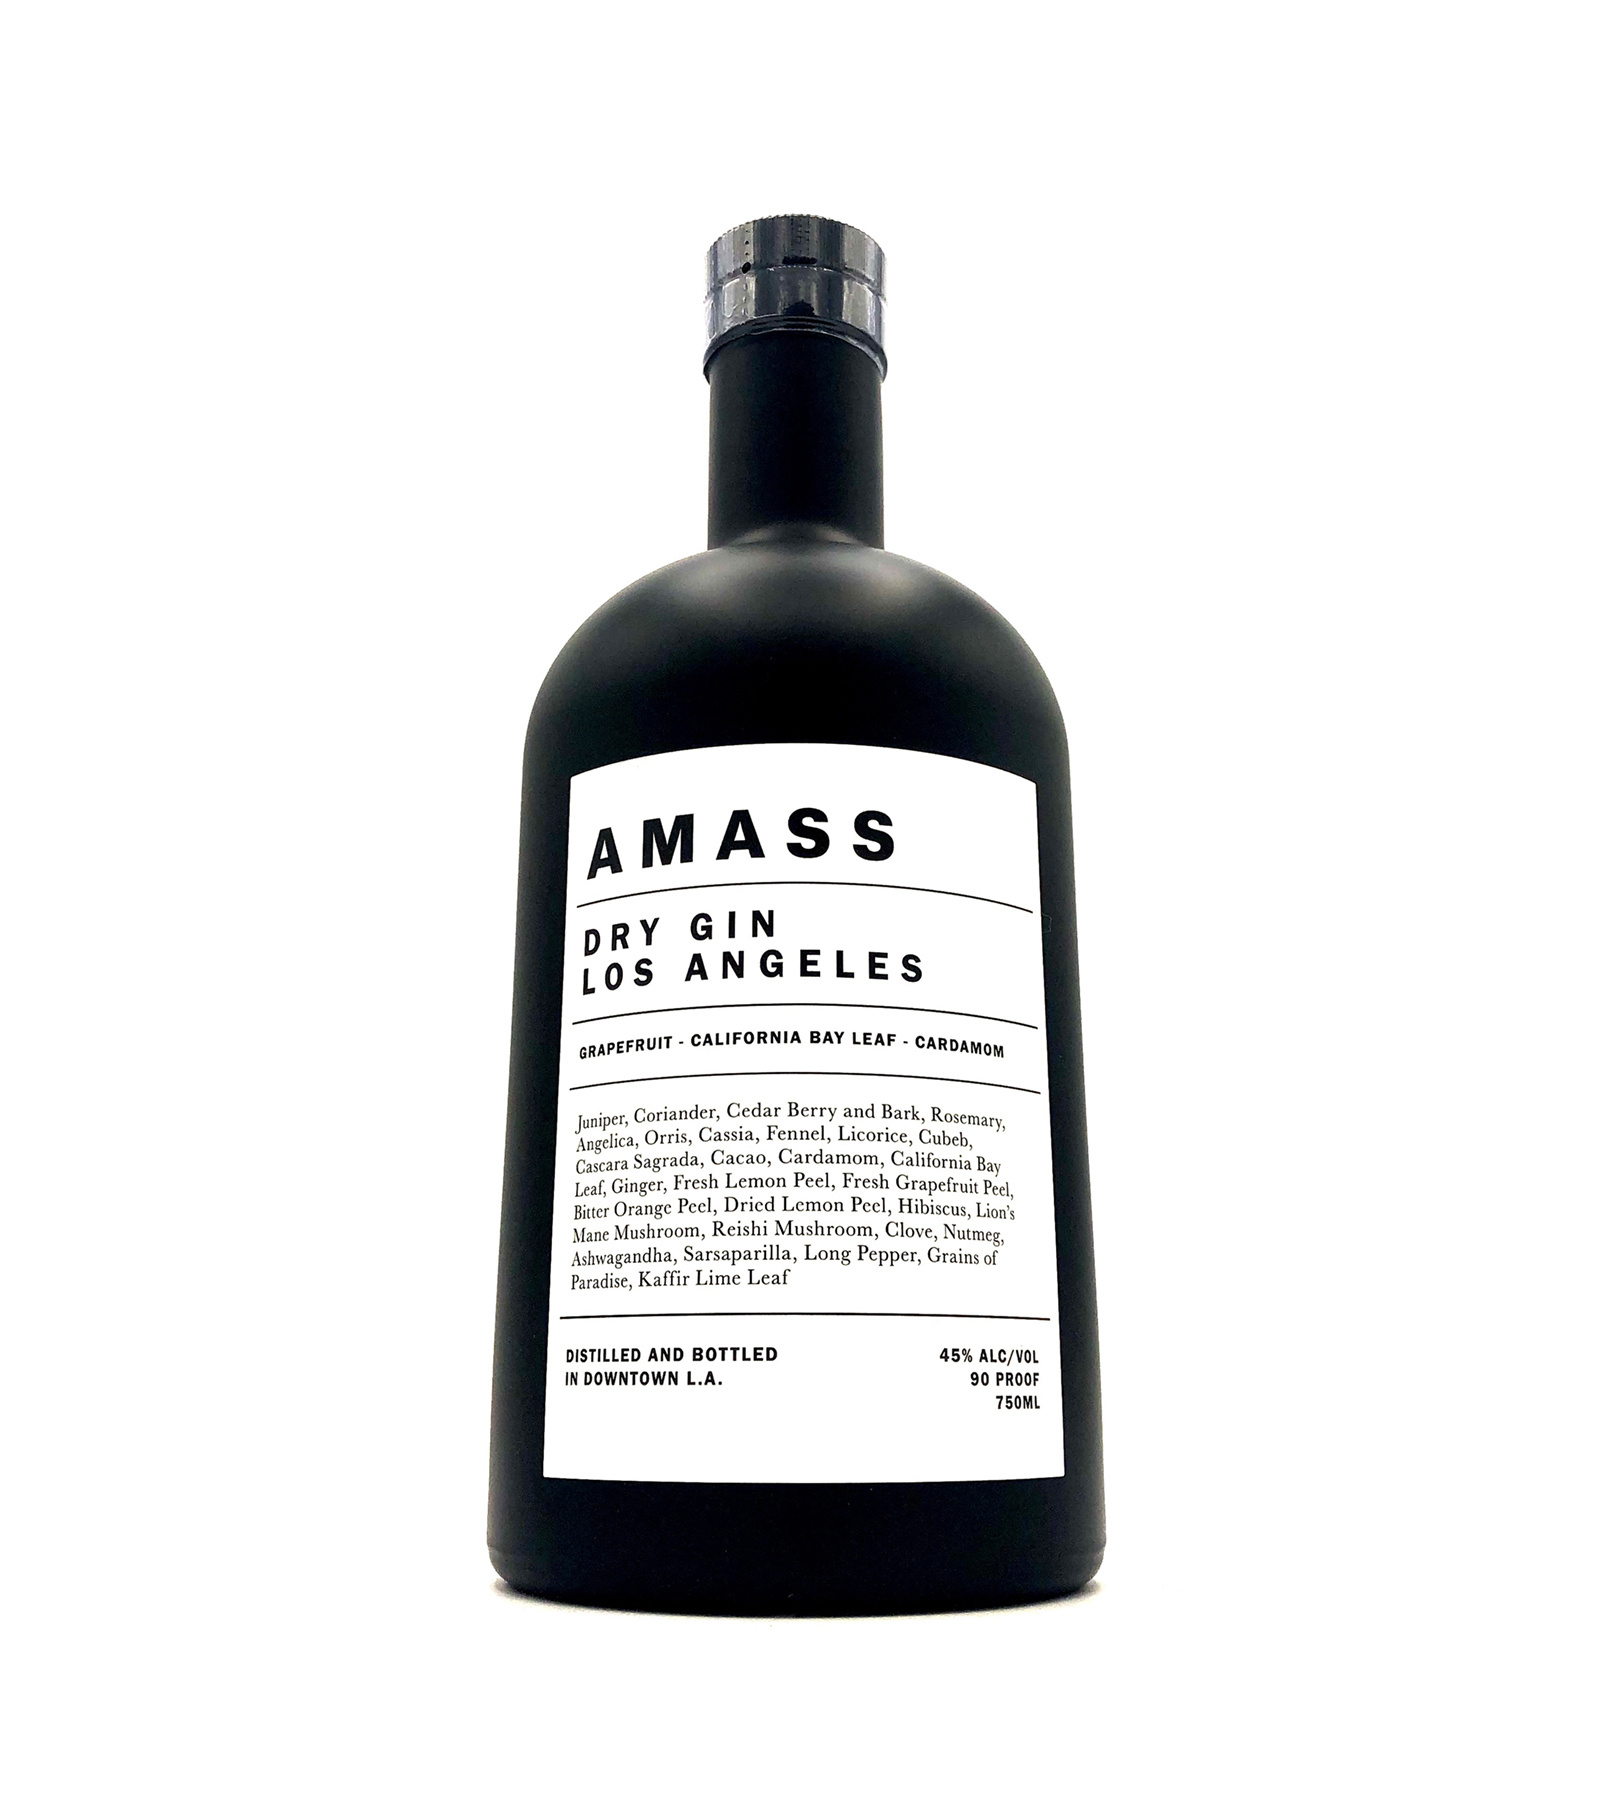 Dry Gin Los Angeles 750ml AMASS